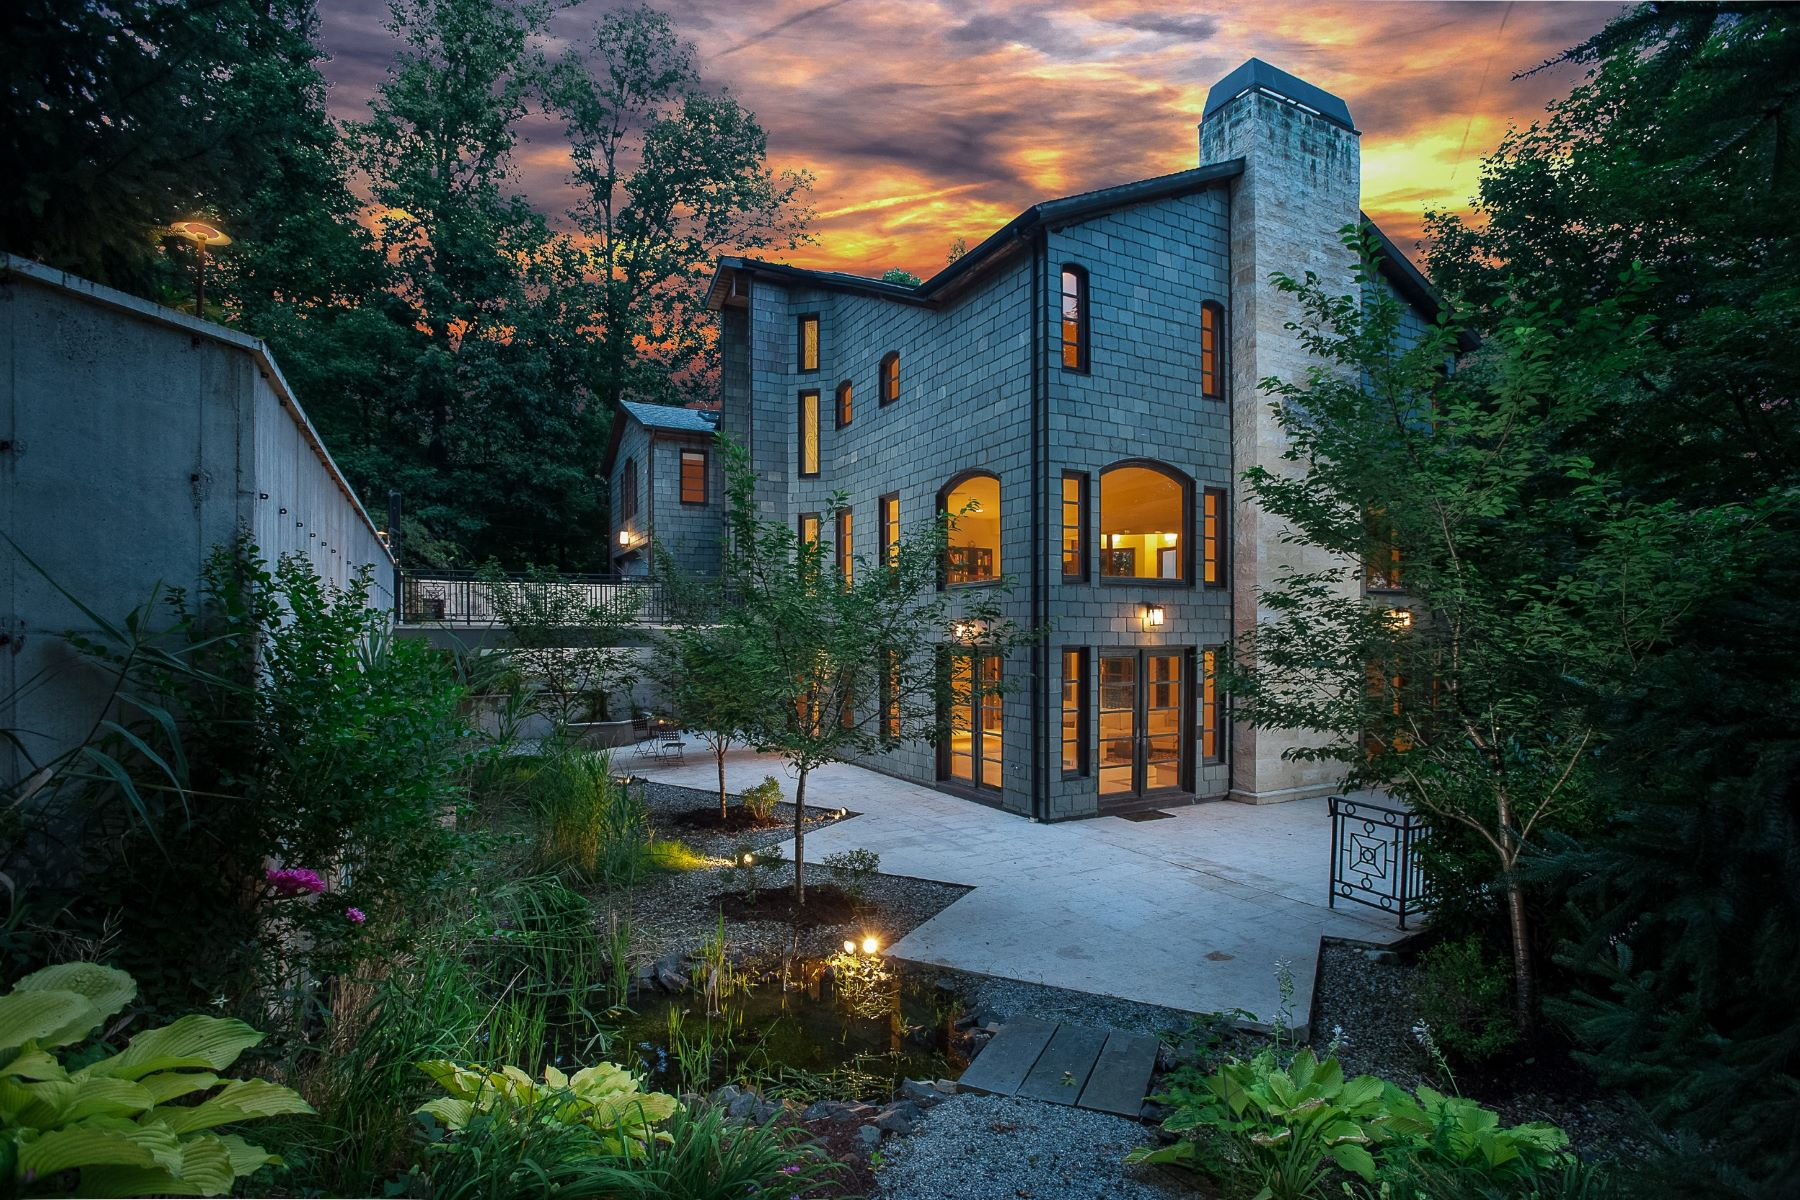 Single Family Home for Sale at Architectural Masterpiece 834 Johnston Drive Watchung, 07069 United States